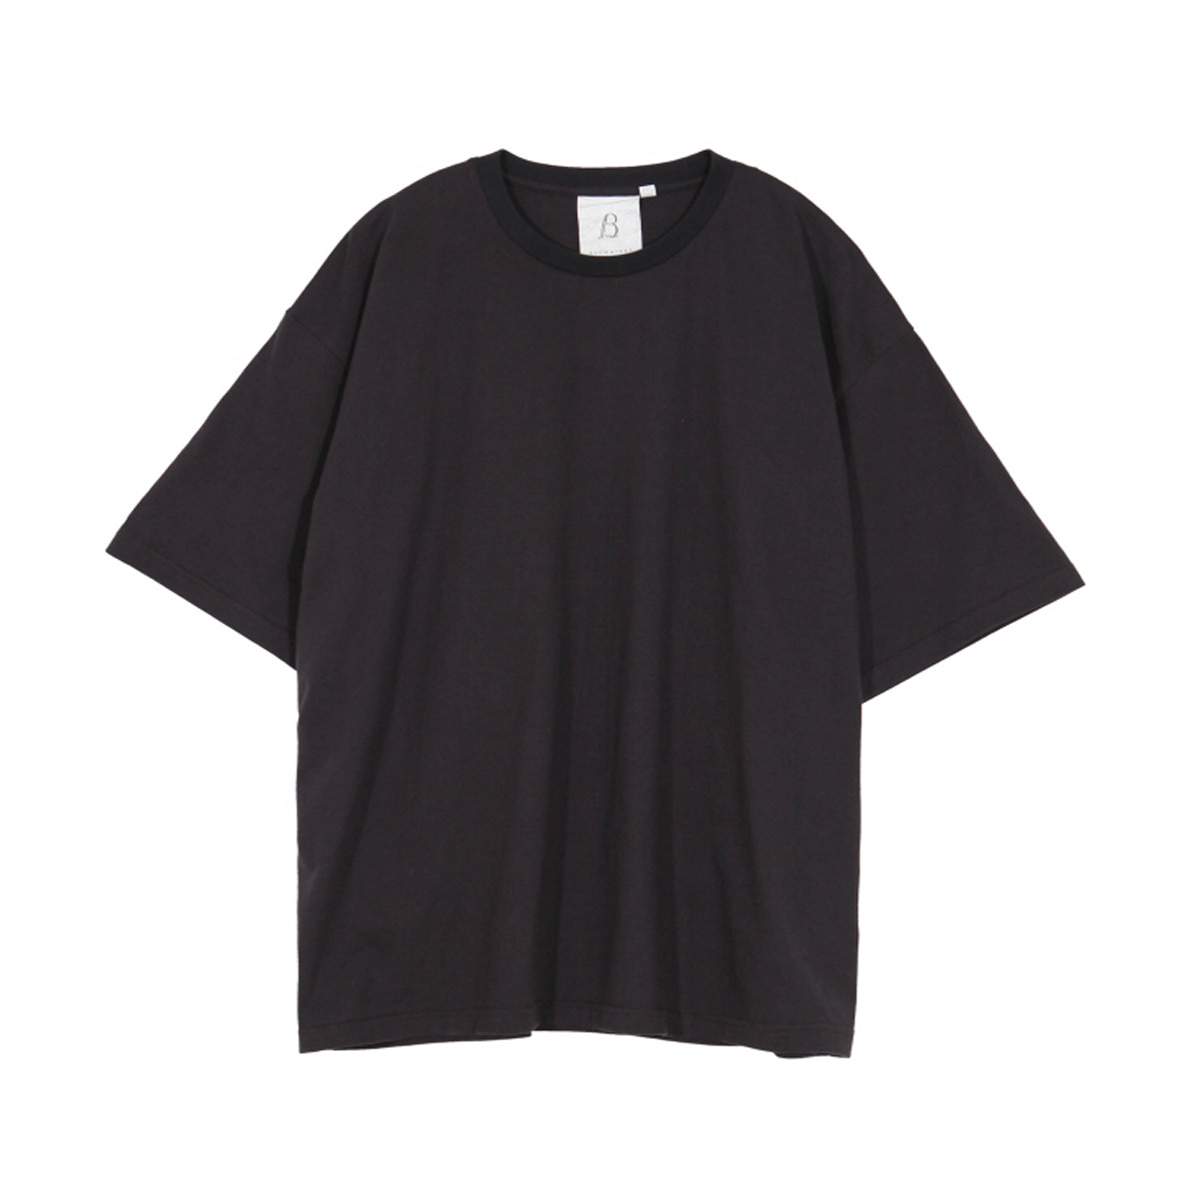 [BROWNYARD] ONE DAY T-SHIRT 'DARK GREY'